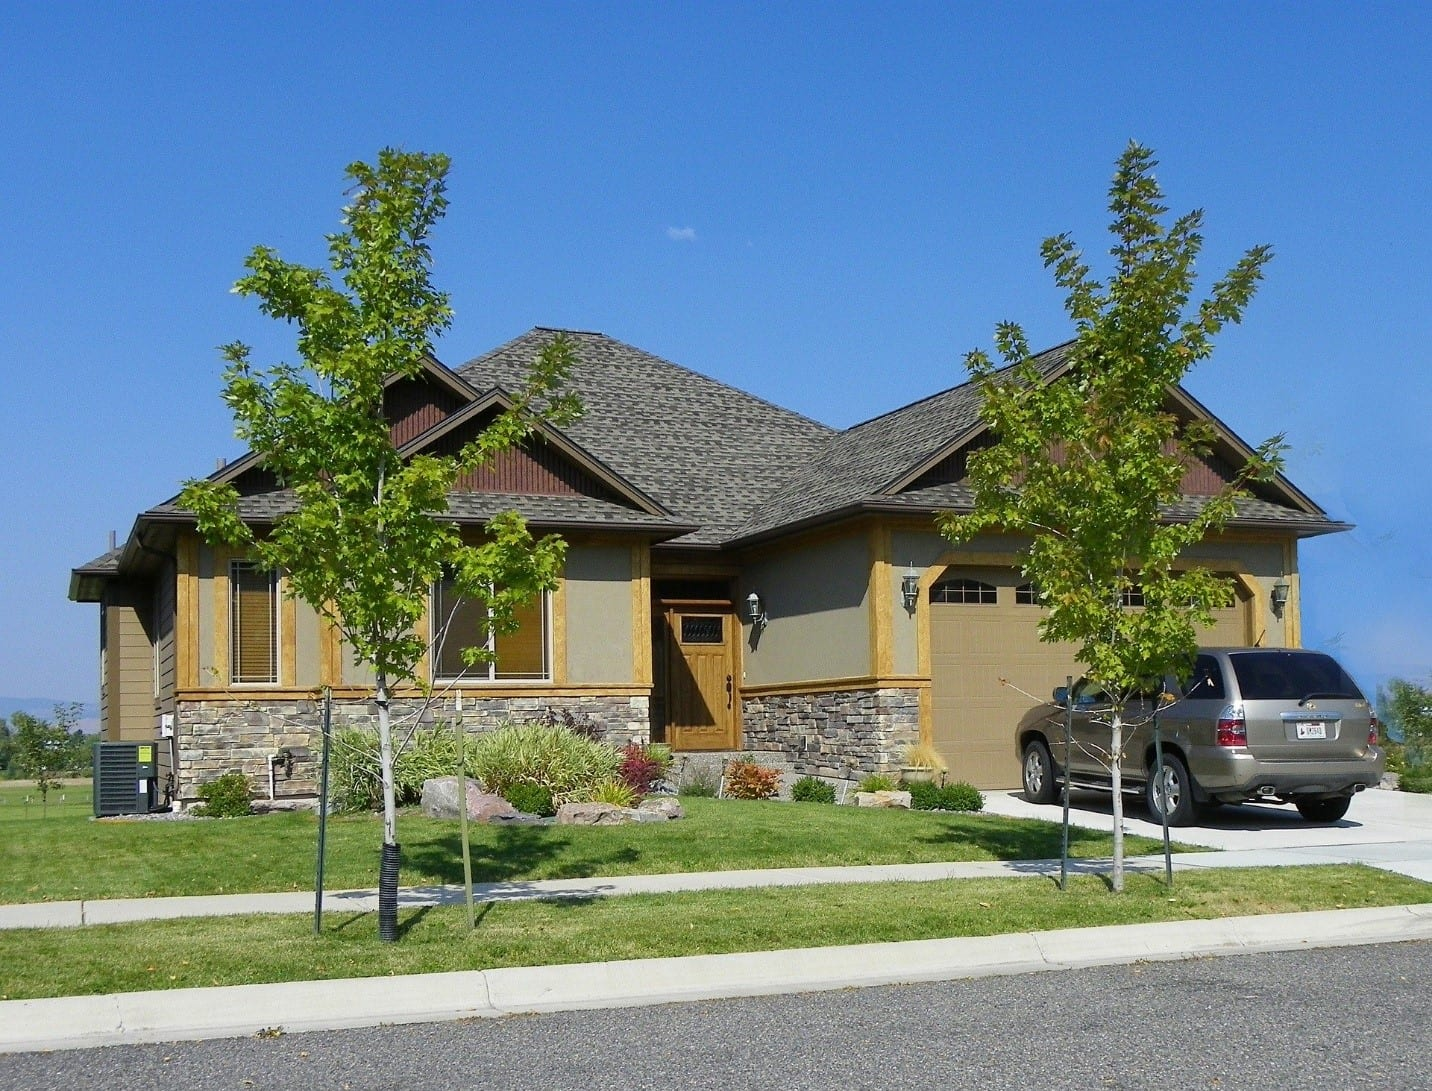 Exterior front view of house property